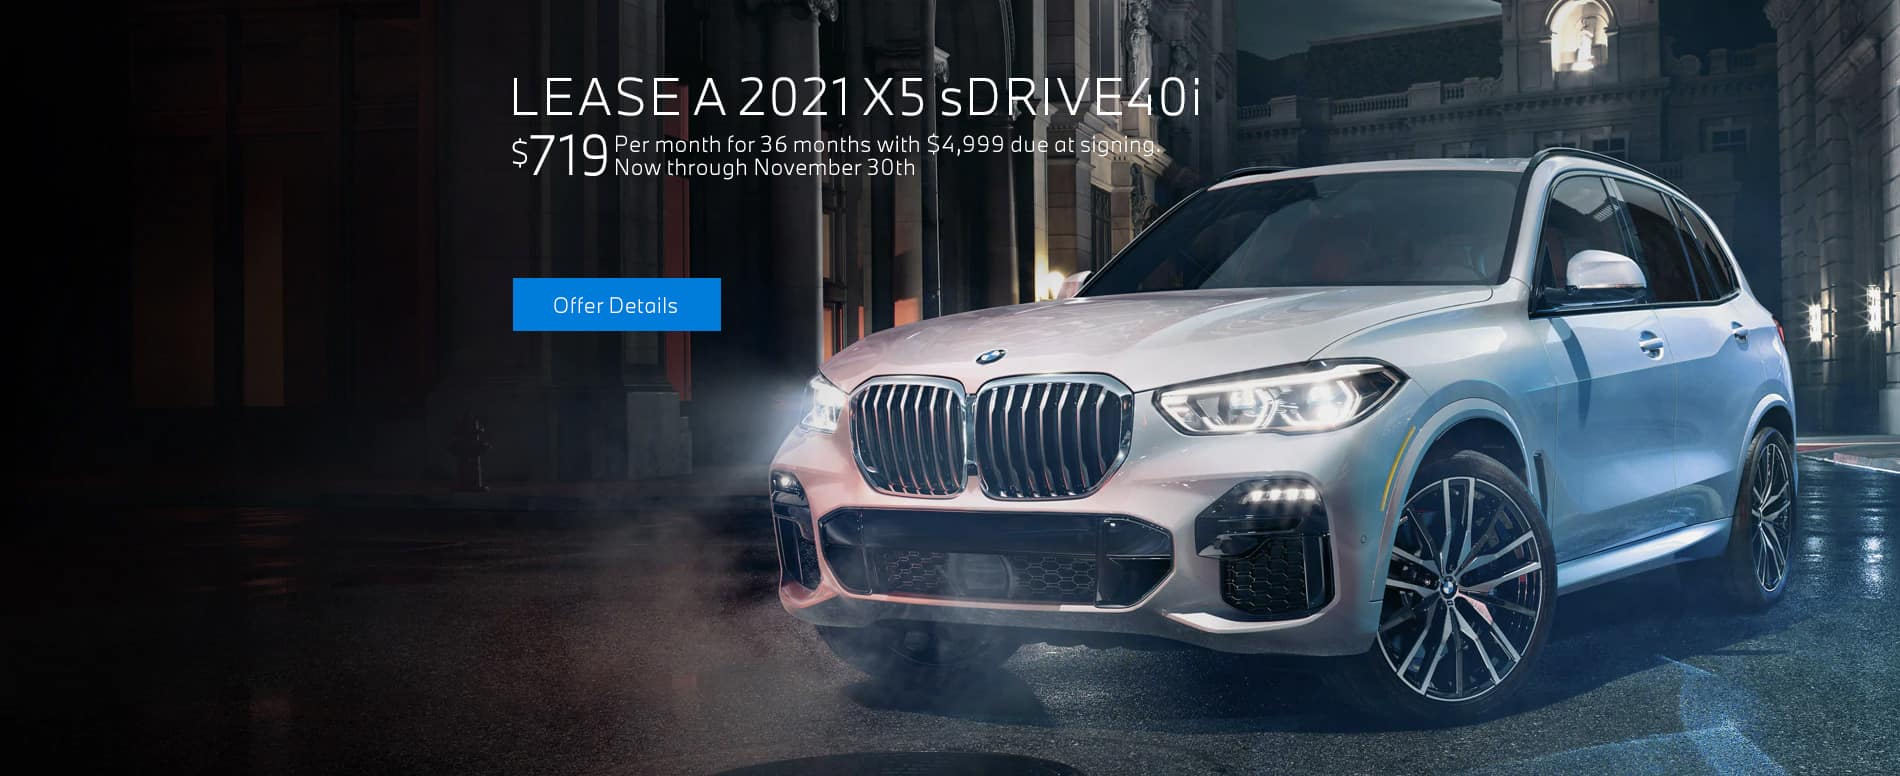 LEASE A 2021 X5 sDRIVE40i